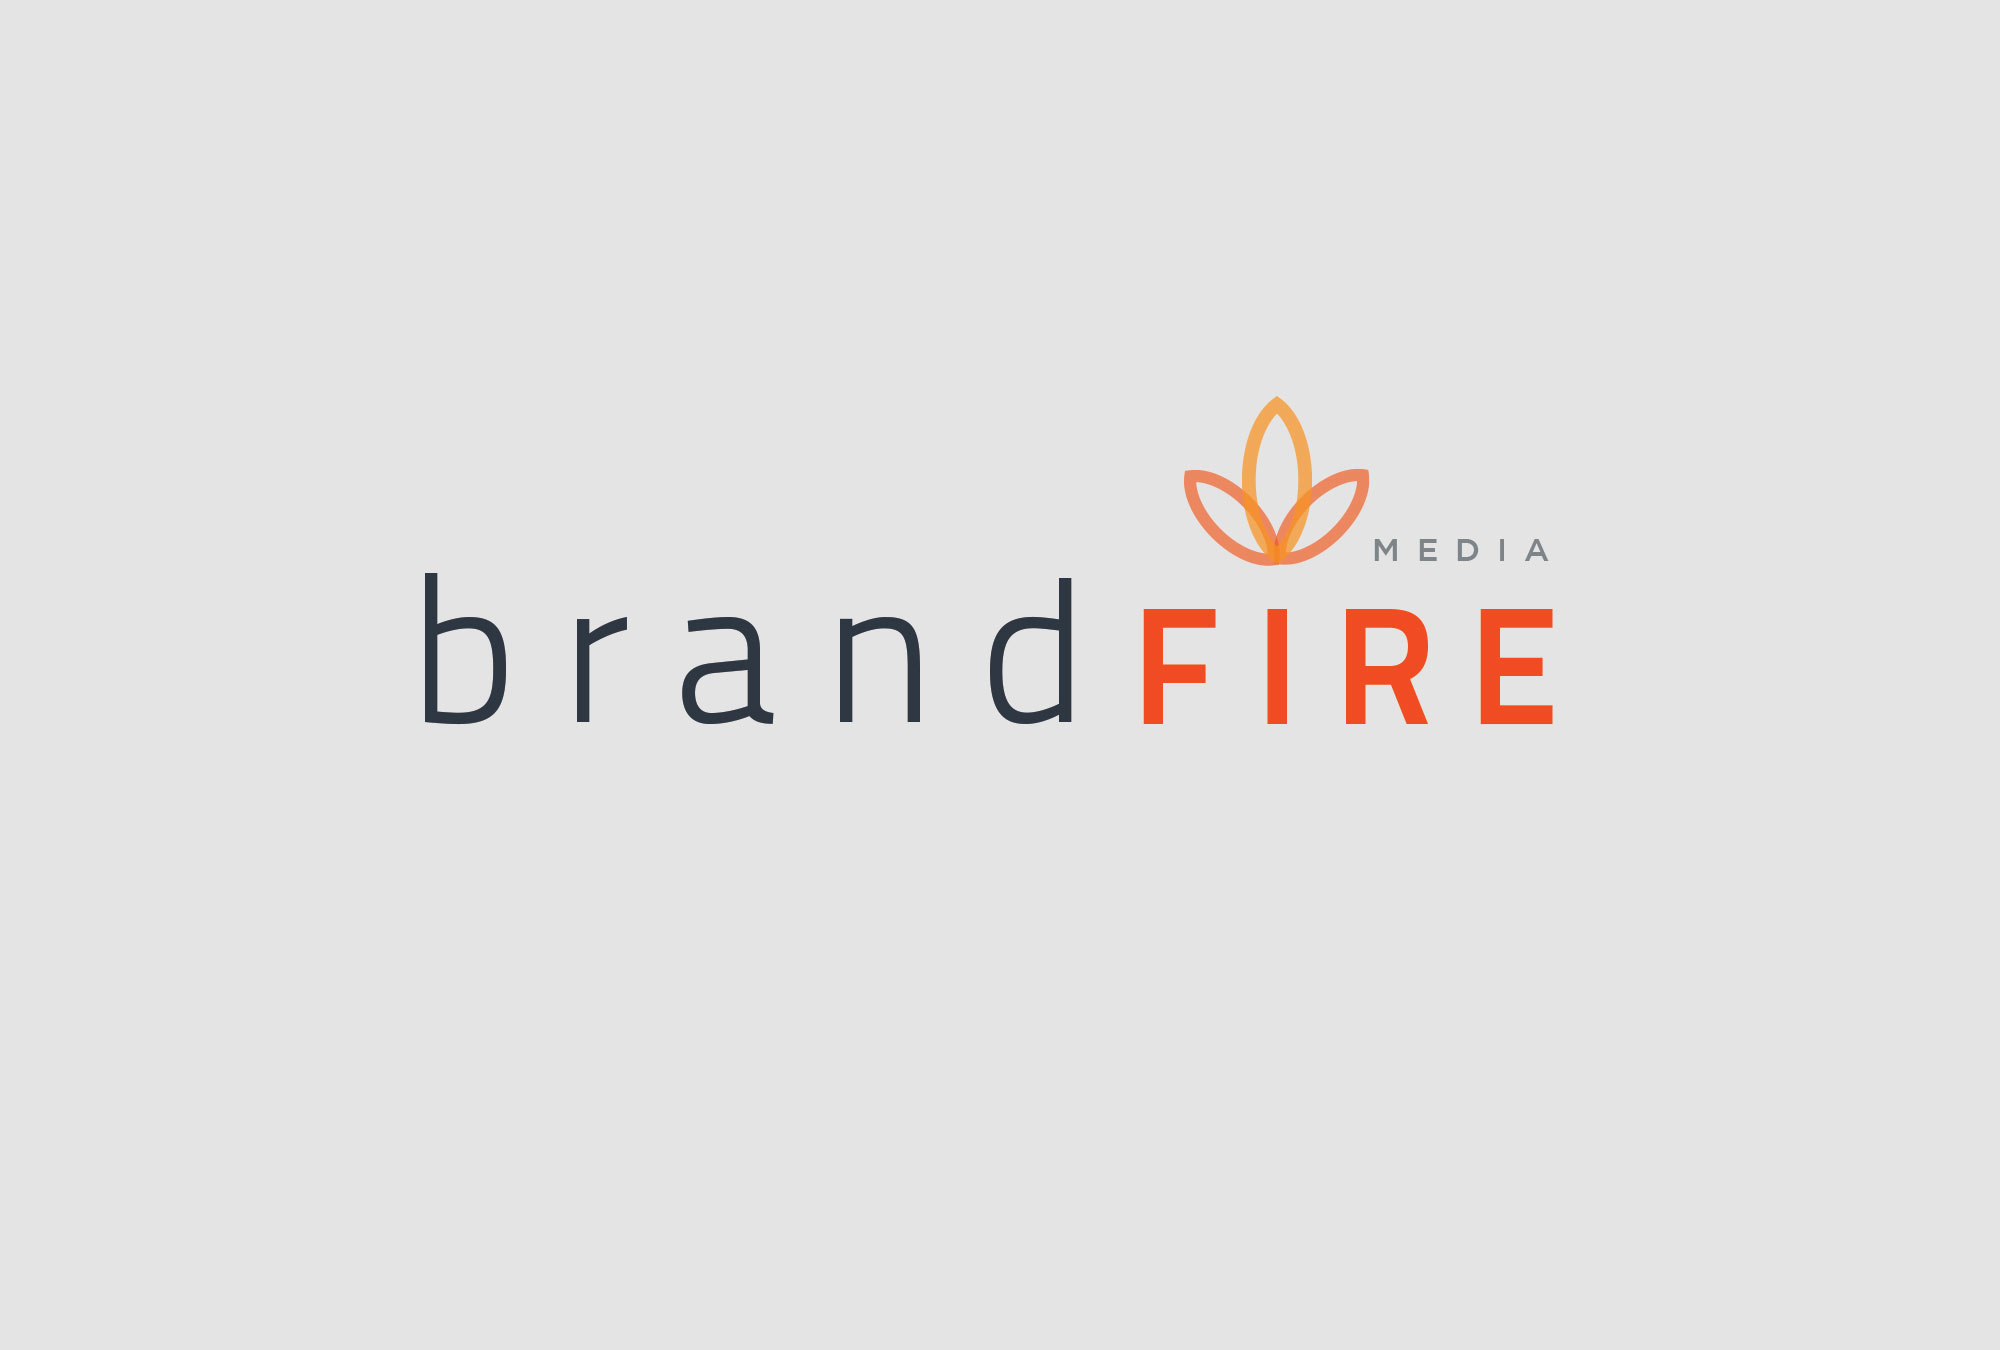 brandfire logo on white